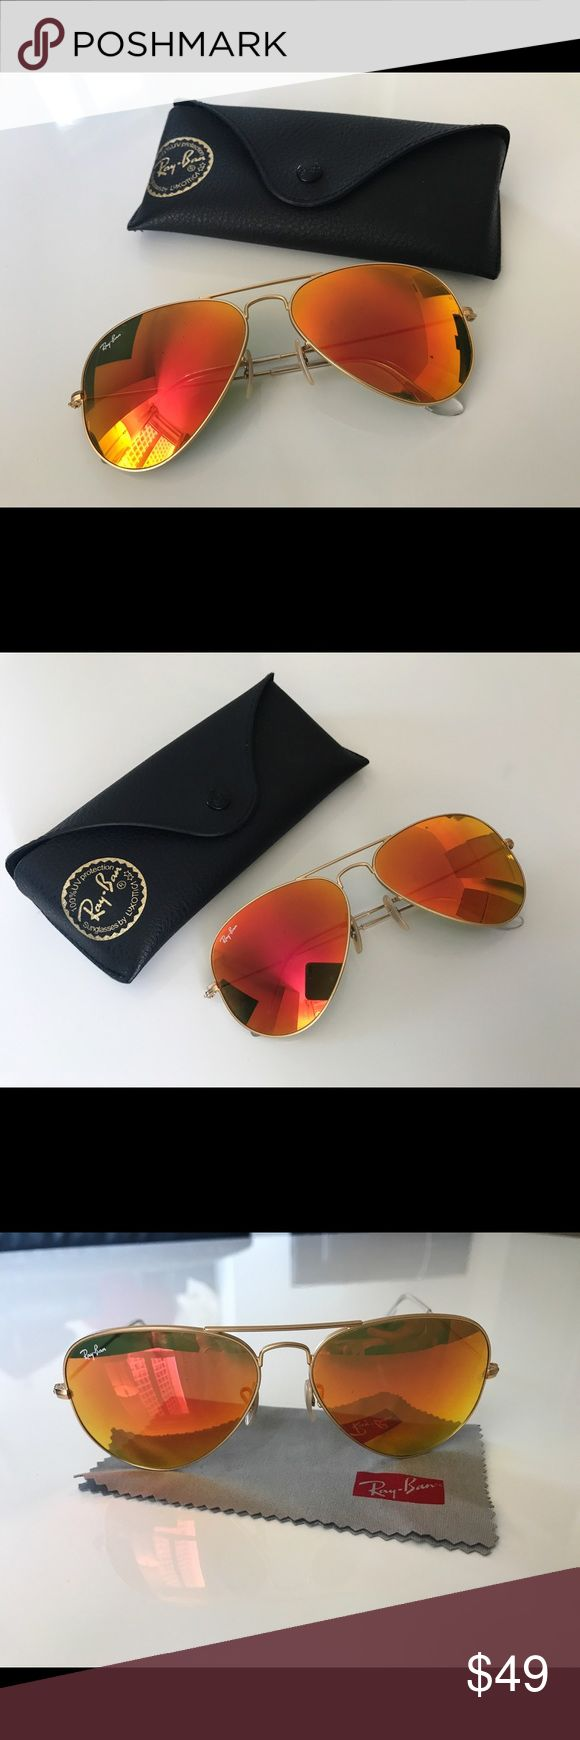 Ray-Ban Aviator Sunglasses Orange Mirror Lens 58mm Ray-Ban Aviator Sunglasses Orange Mirror Lens Gold Frame RB3025 112/69 58mm, Condition: Pre-Owned with Very light marks, Original price: $175 Ray-Ban Accessories Sunglasses